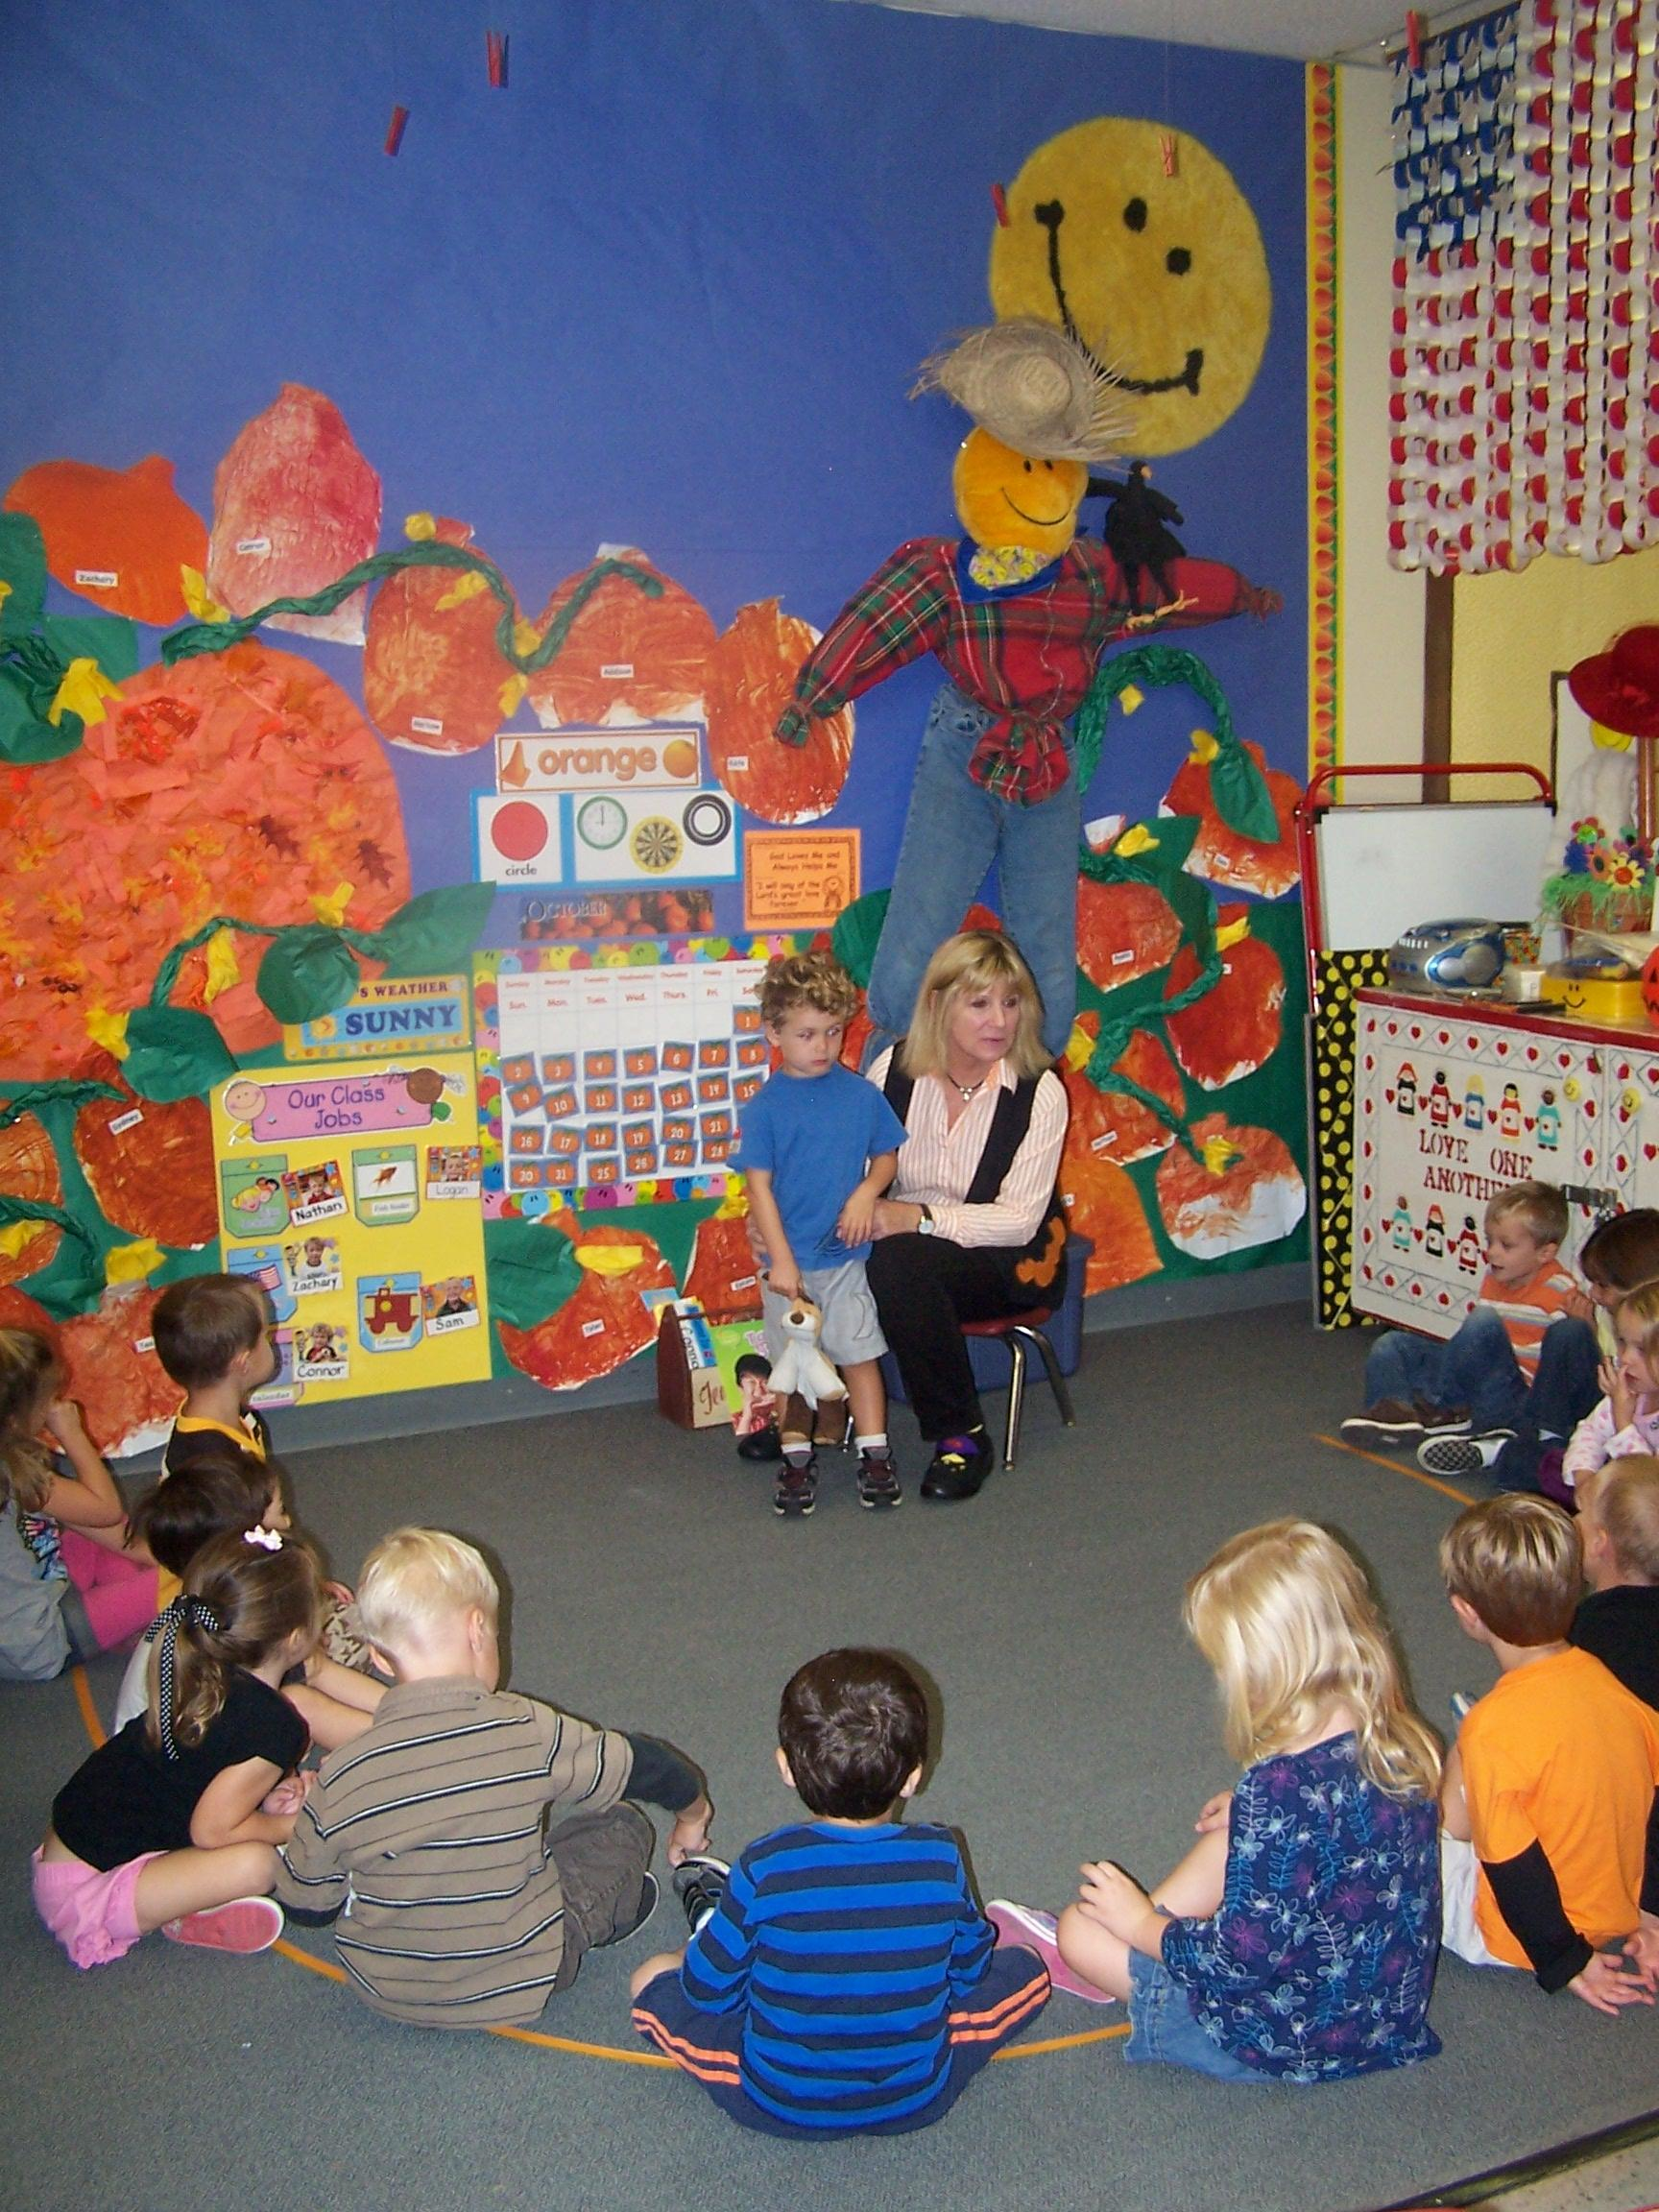 Saddleback Children's Center image 4